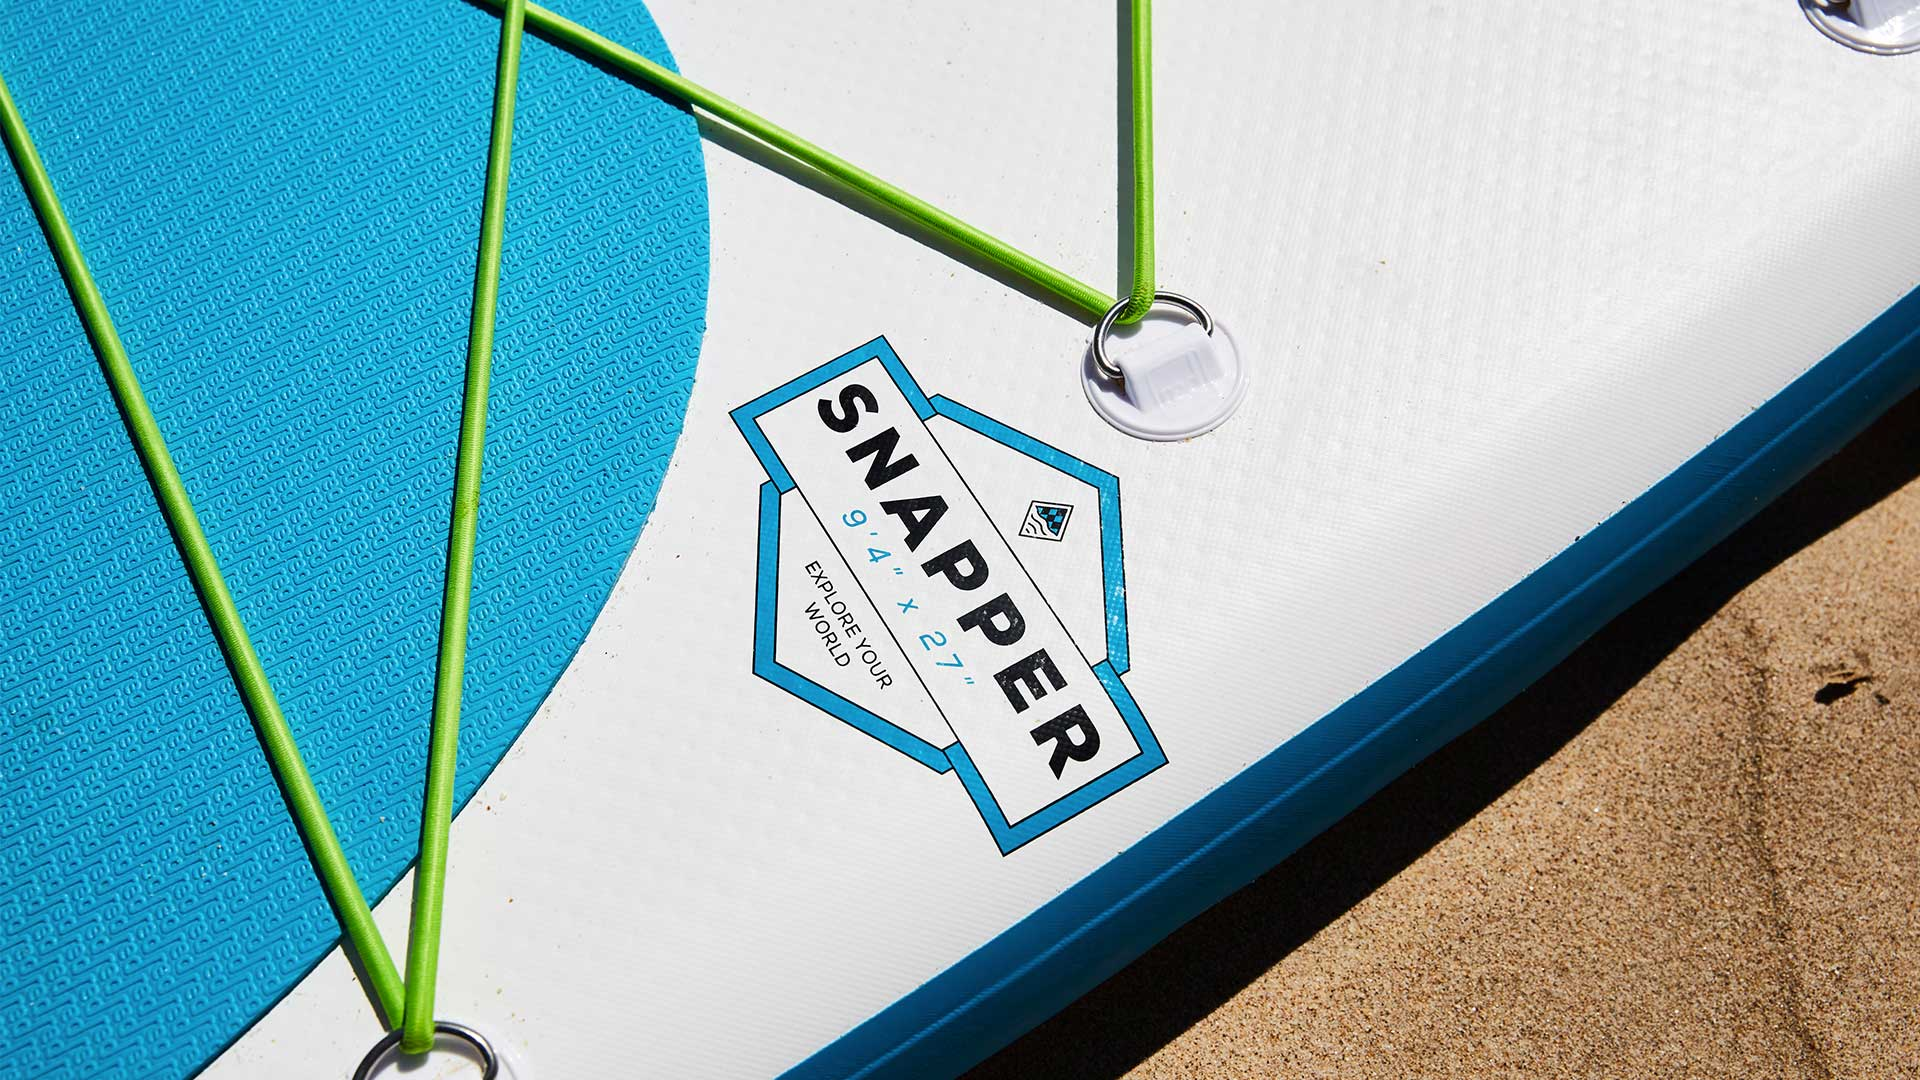 redpaddleco-94-snapper-inflatable-paddle-board-desktop-gallery-cargo